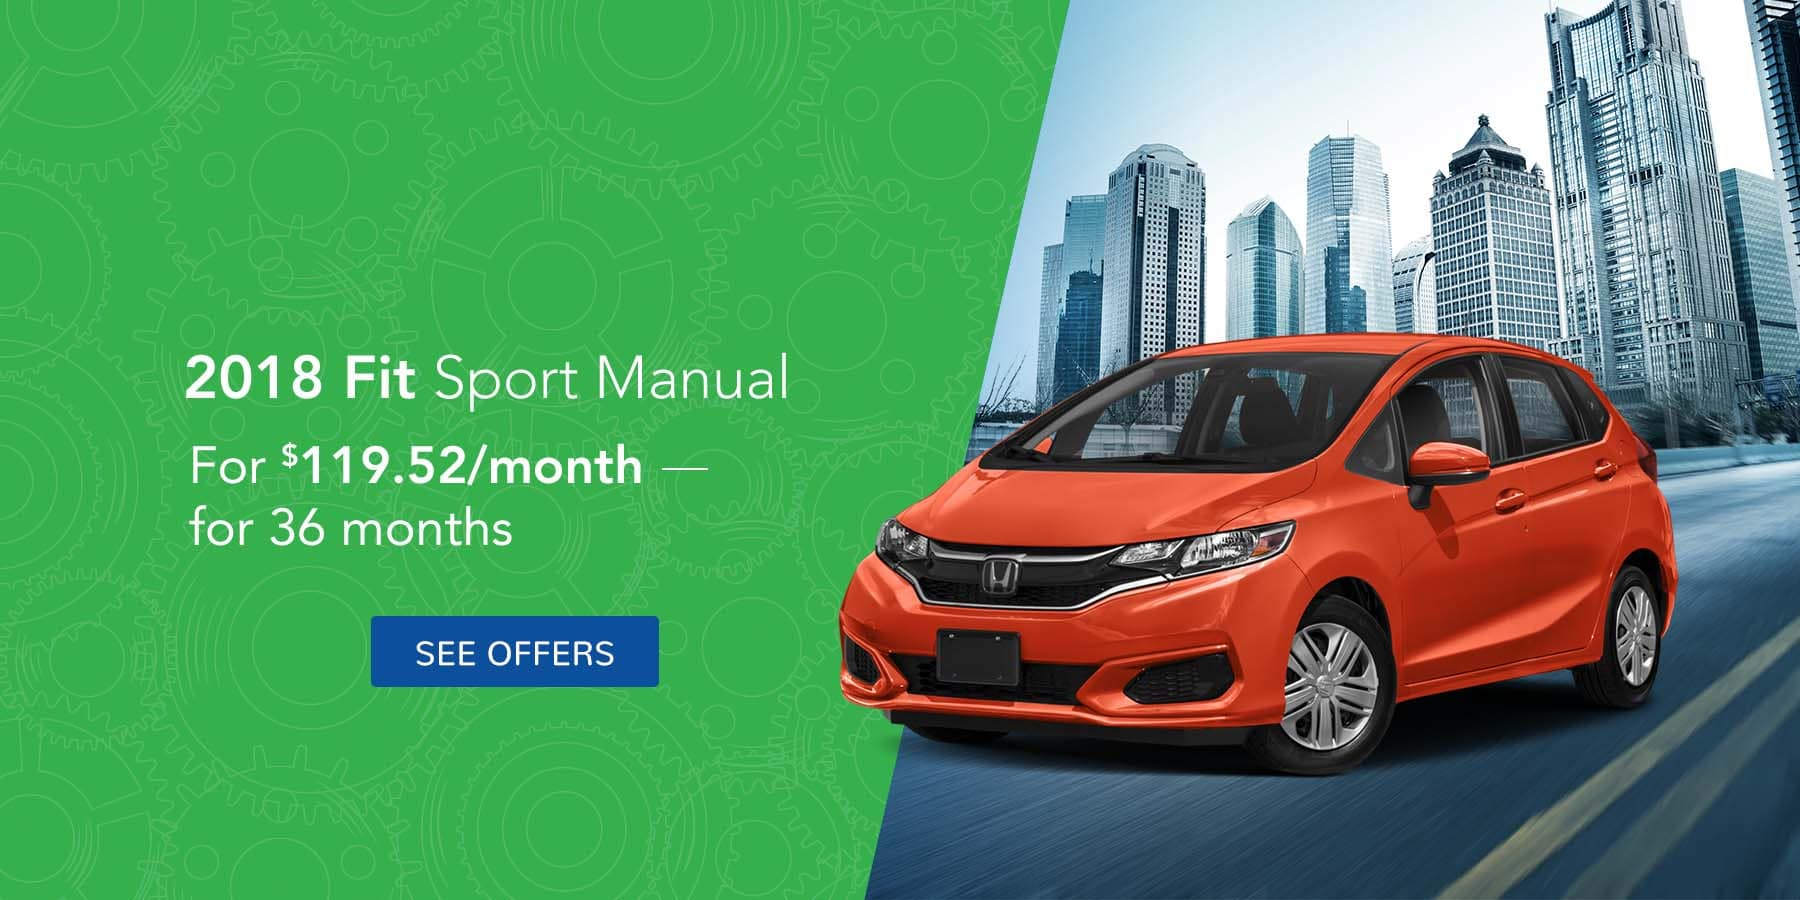 Fit March Offer Jeffrey Honda Homepage